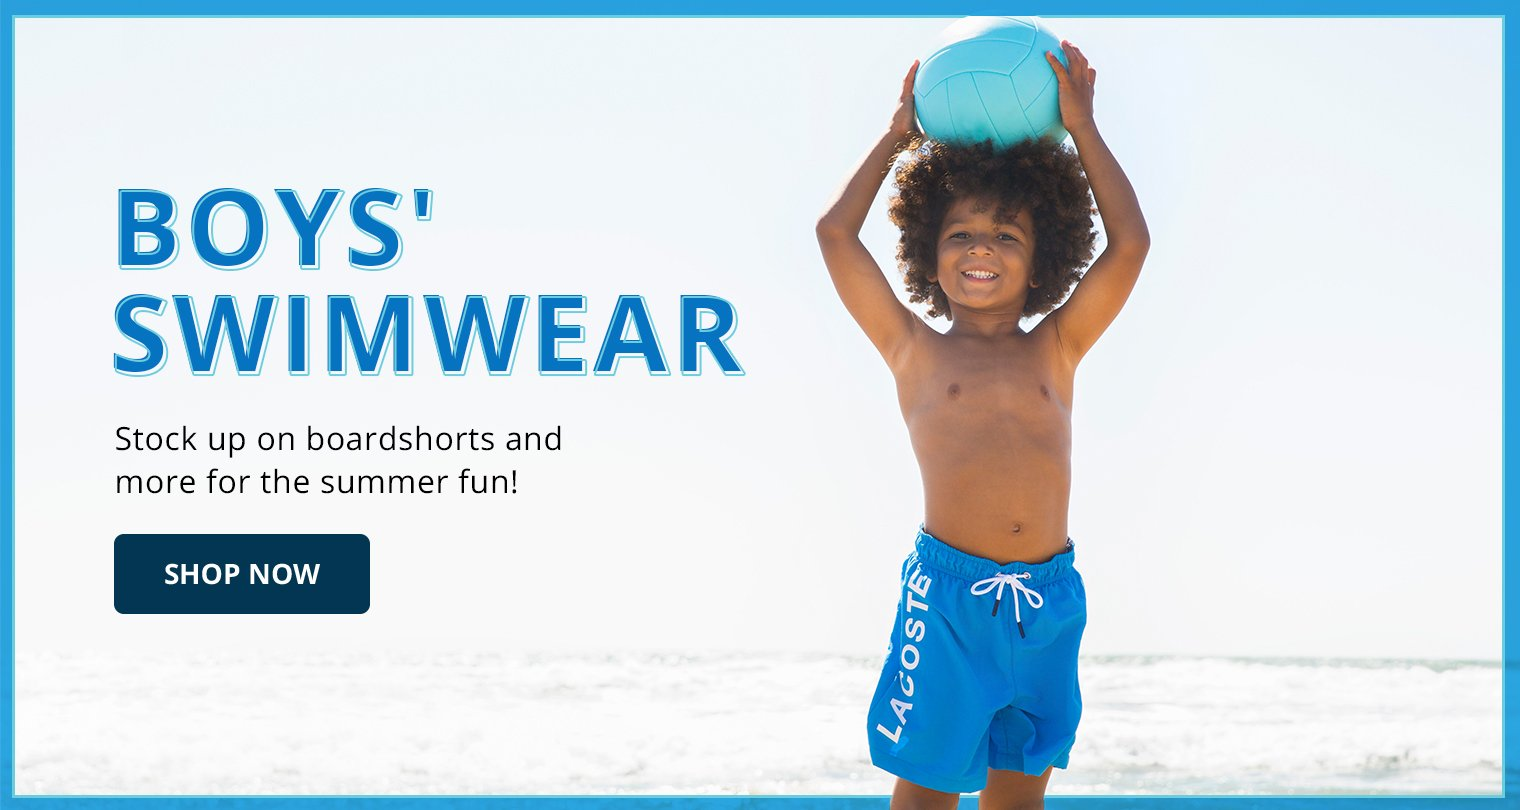 Boys' Swimwear. Stock up on boardshorts and more for the summer fun! Shop now.